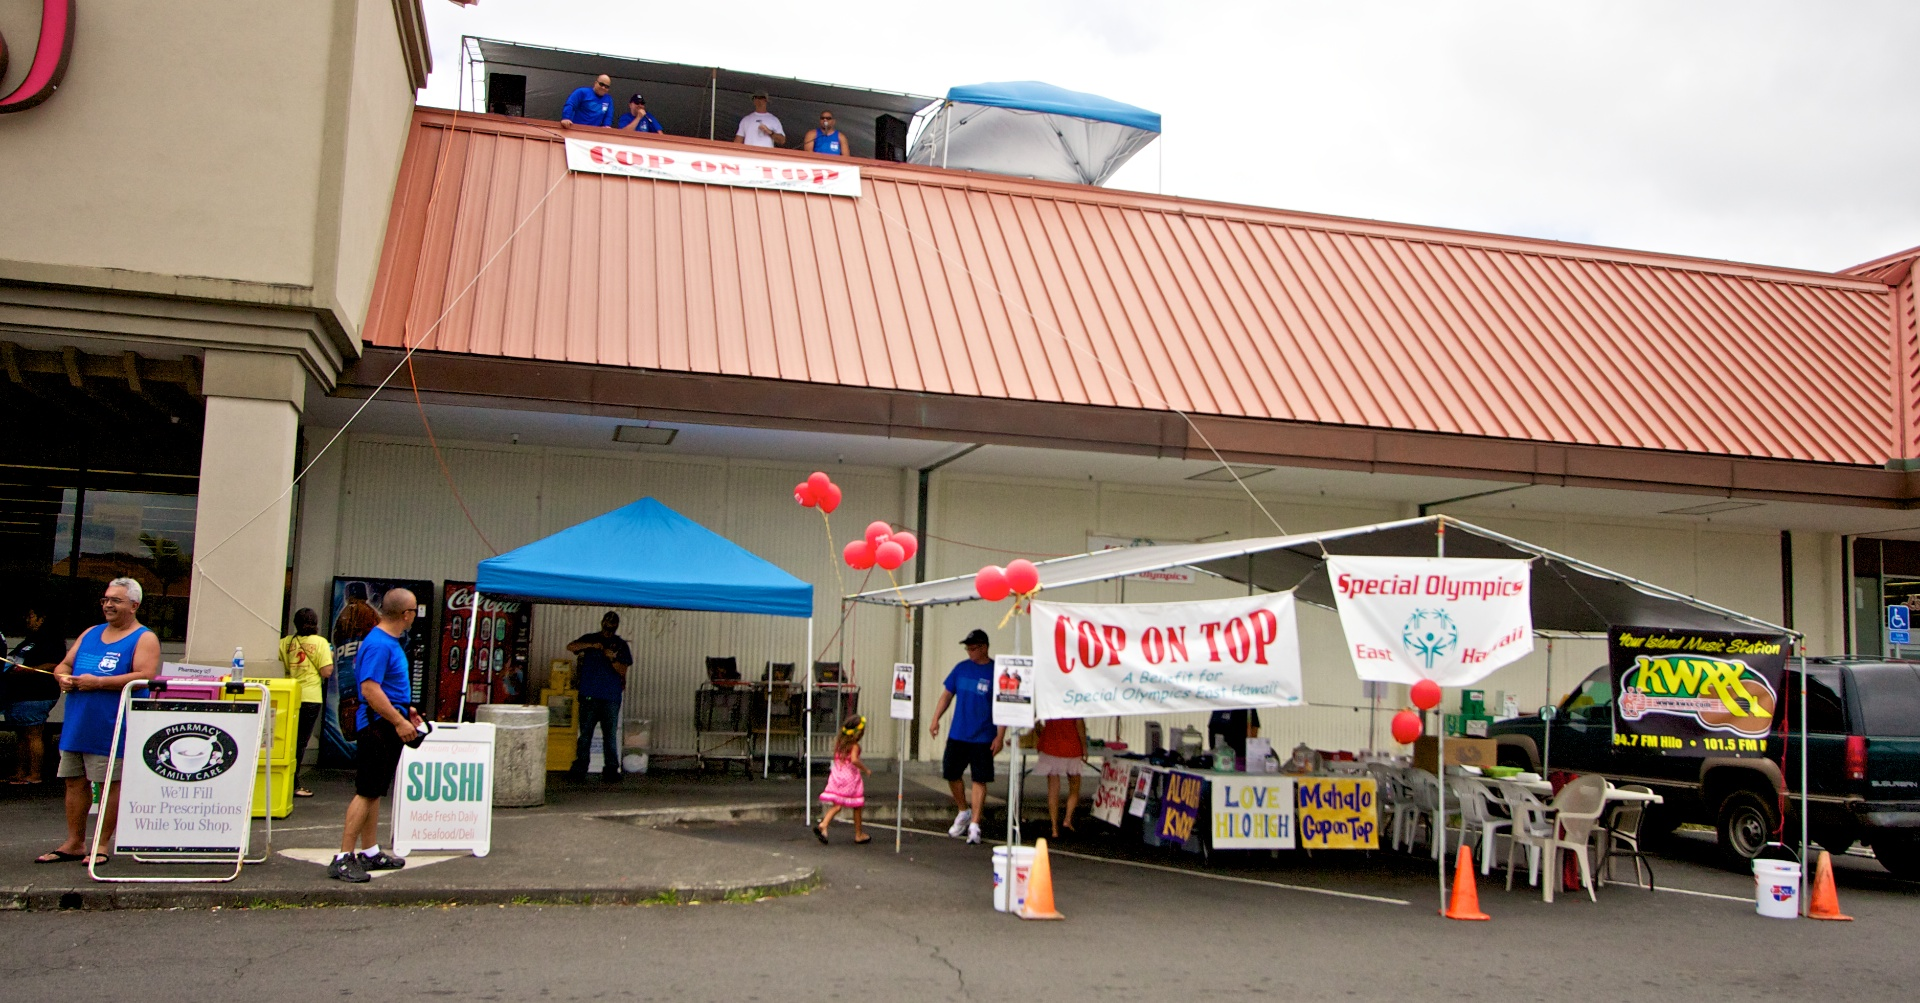 Hawaii County police officers spent a few days on the roof of Safeway in Hilo to raise funds for Special Olympics in Hawaii. Saturday (May 1) was the final day of the fundraiser.